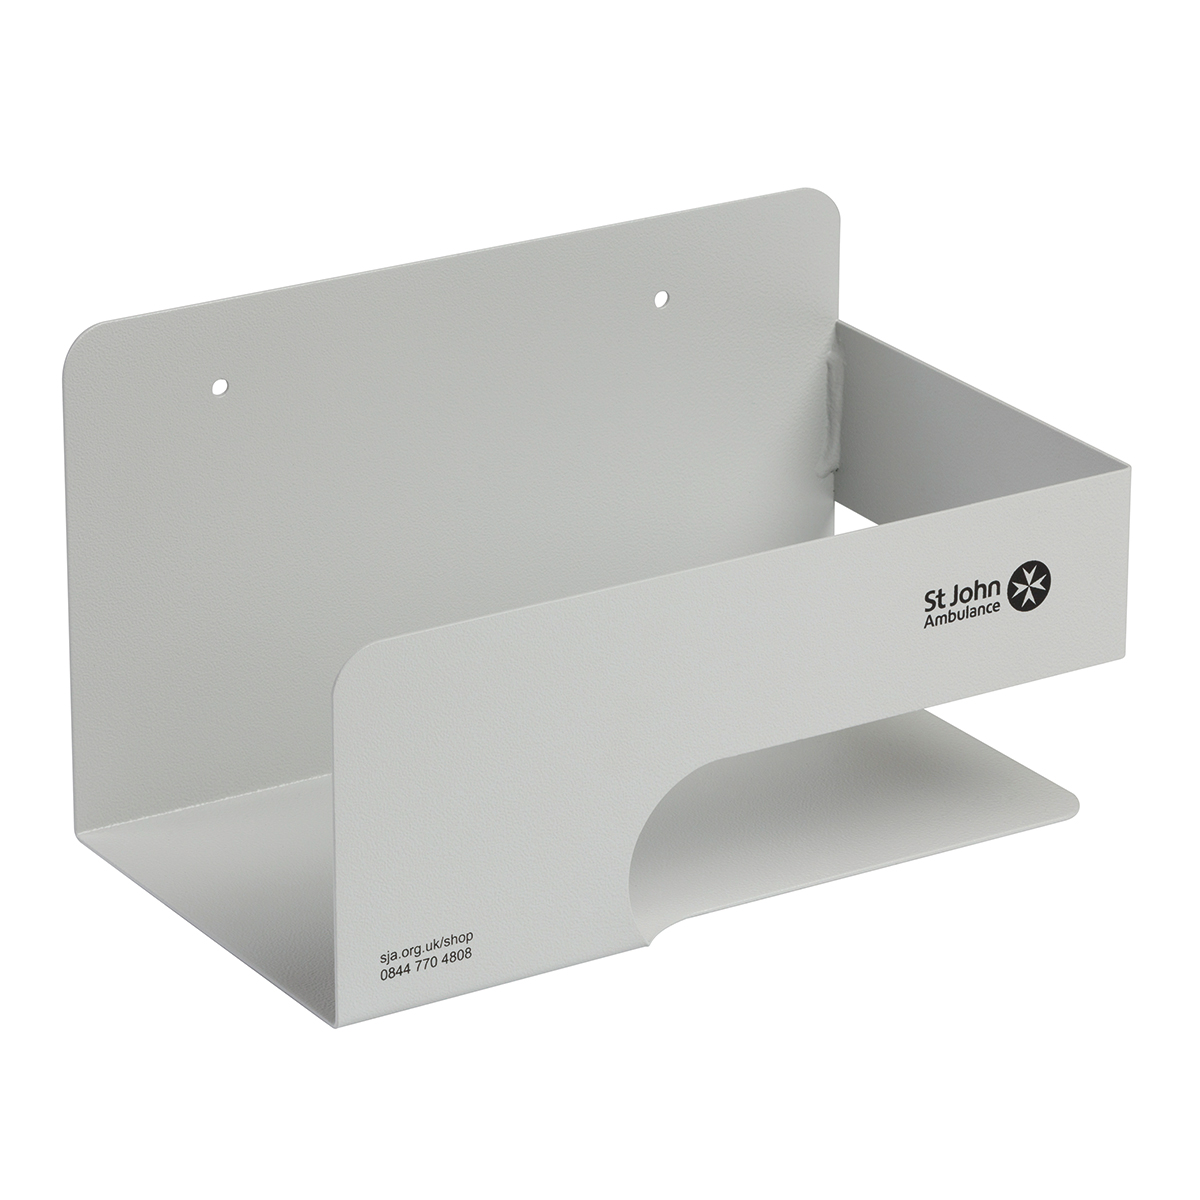 St John Ambulance defibrillator Wall Mount Bracket